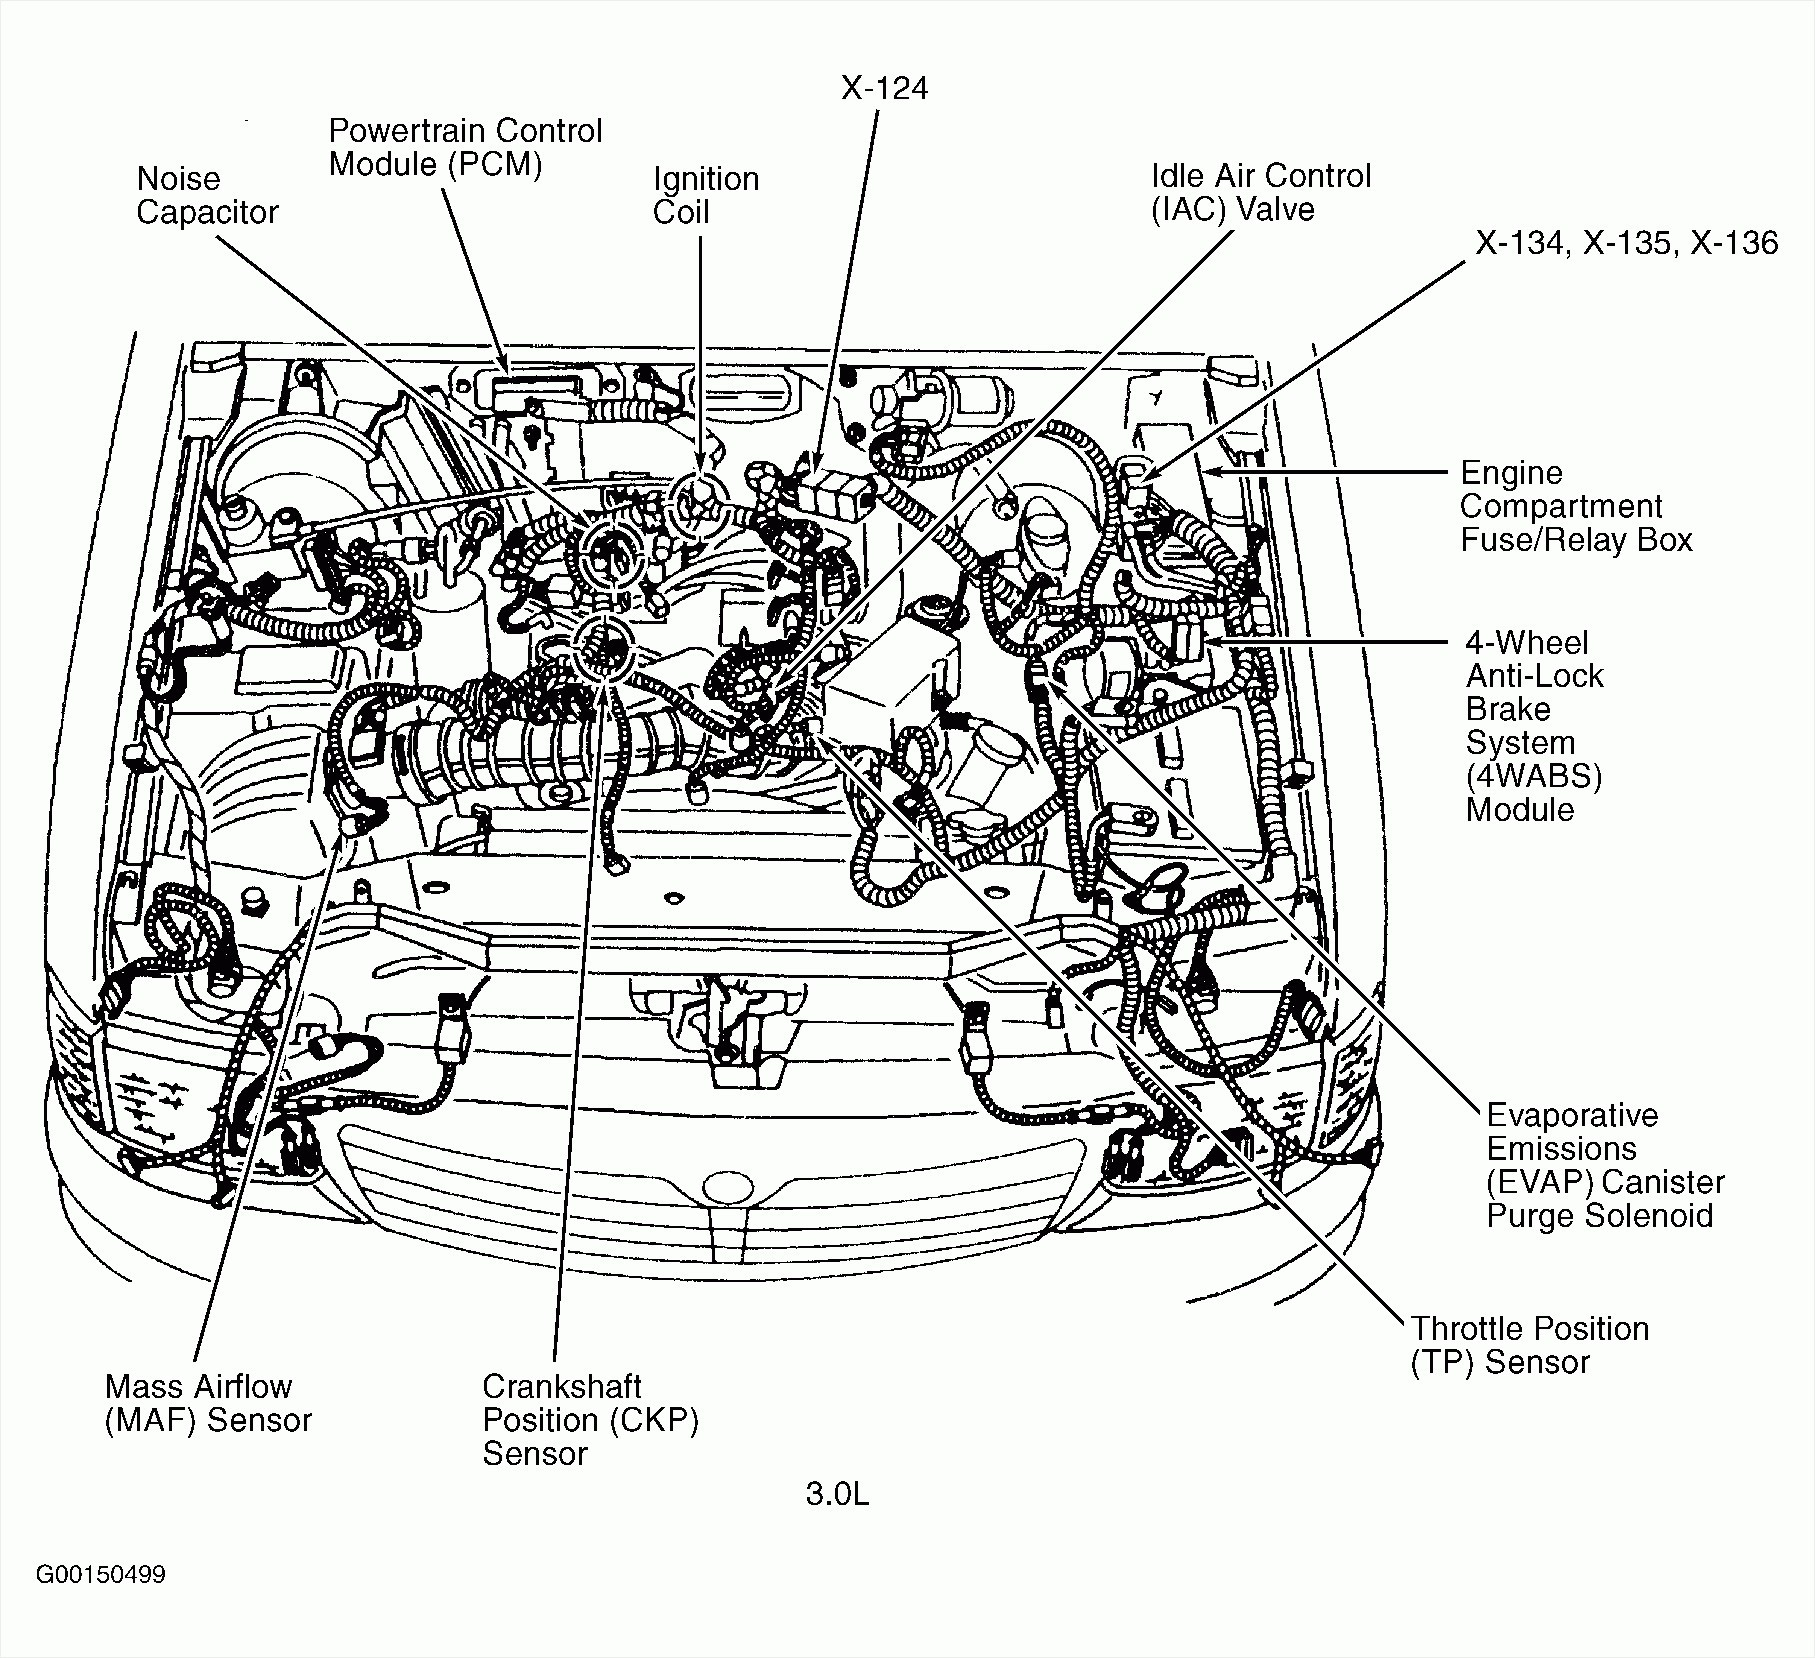 hight resolution of acura rl engine bay diagram wiring diagram load 2000 acura rl 3 5 engine diagram wiring